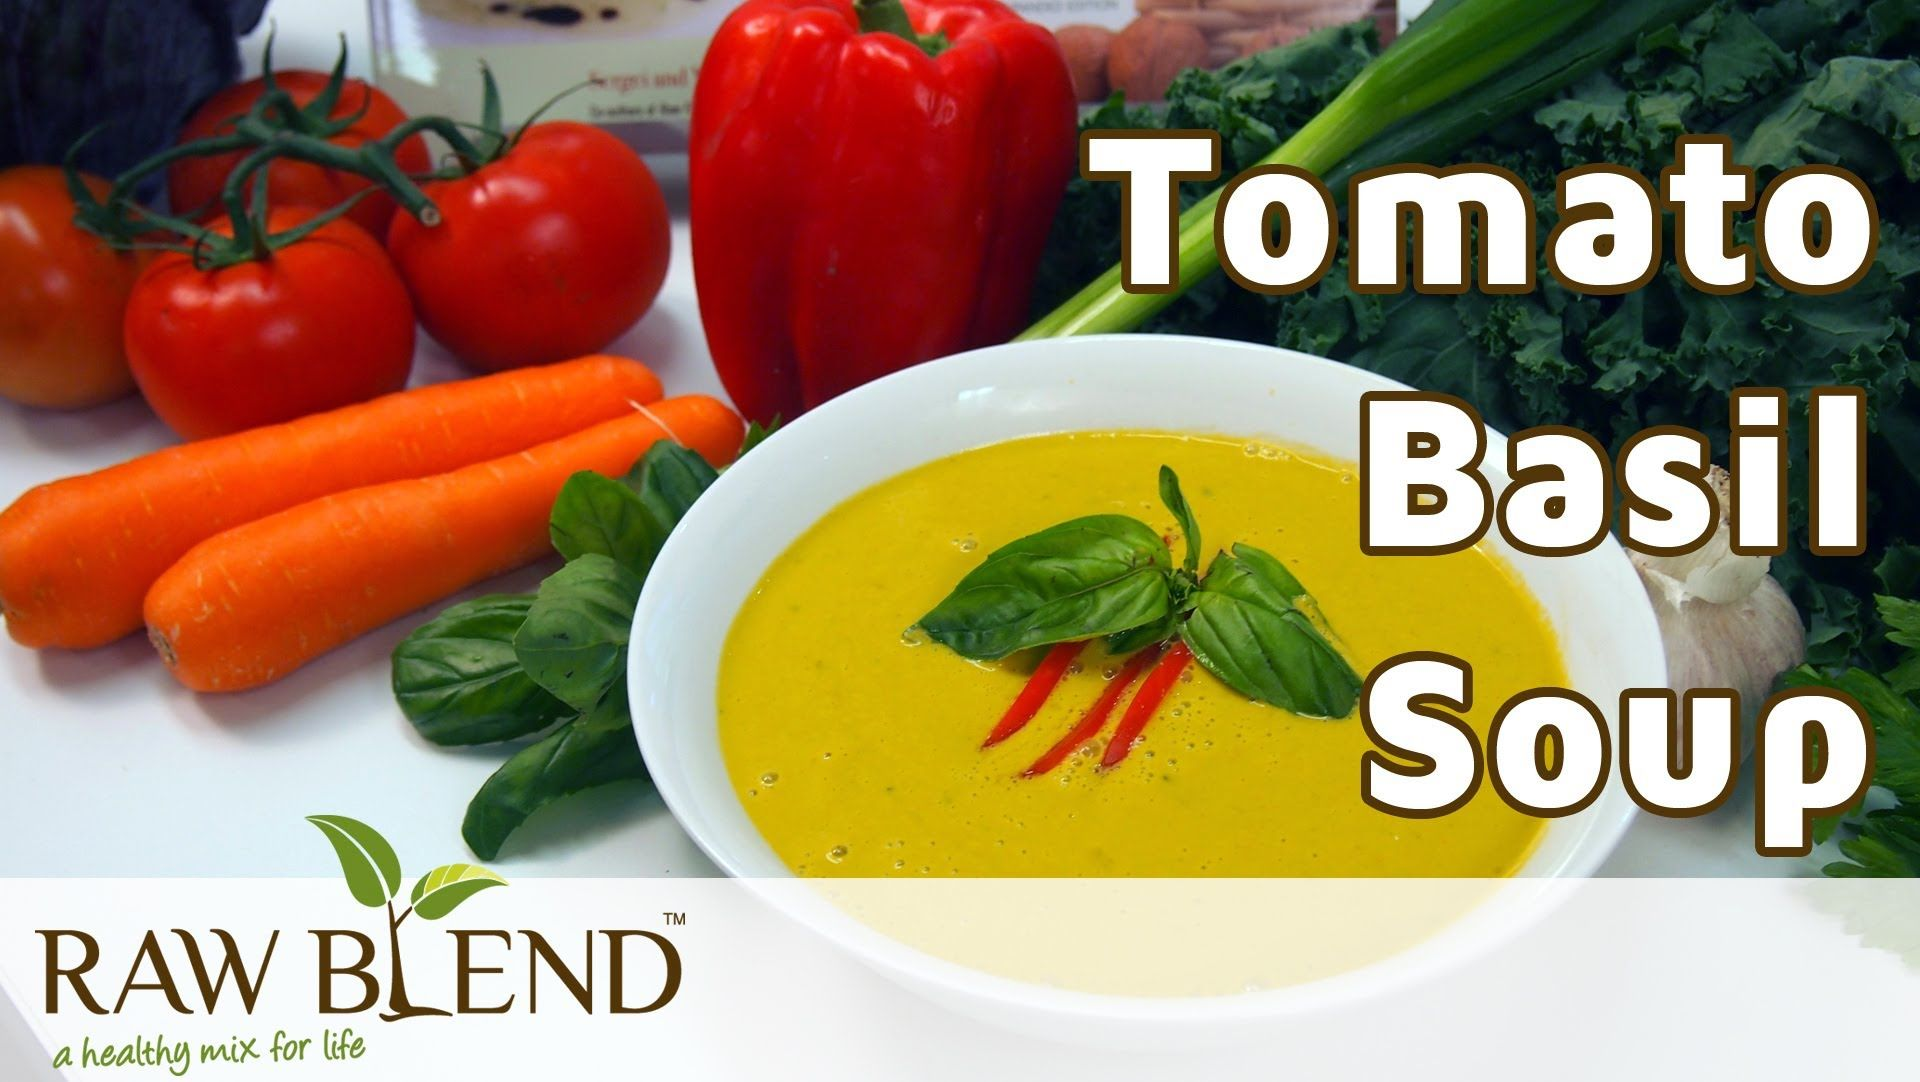 How to make hot soup tomato basil recipe in a vitamix blender by how to make hot soup tomato basil recipe in a vitamix blender by raw blend i made this yesterday and its delicious forumfinder Choice Image